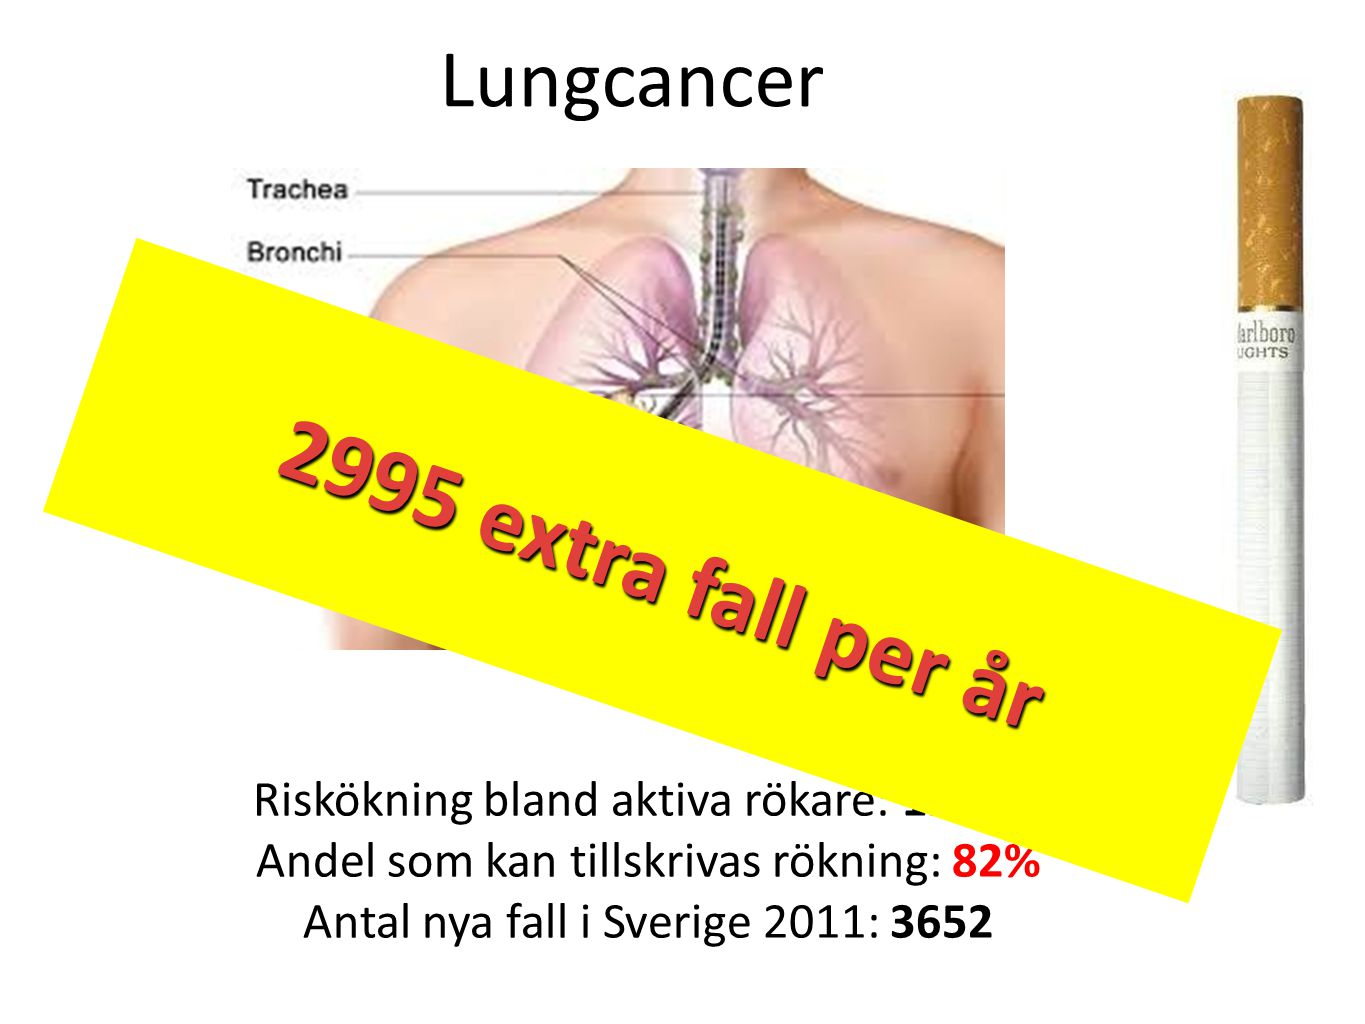 2995 extra cases per year 2995 extra fall per år Lungcancer